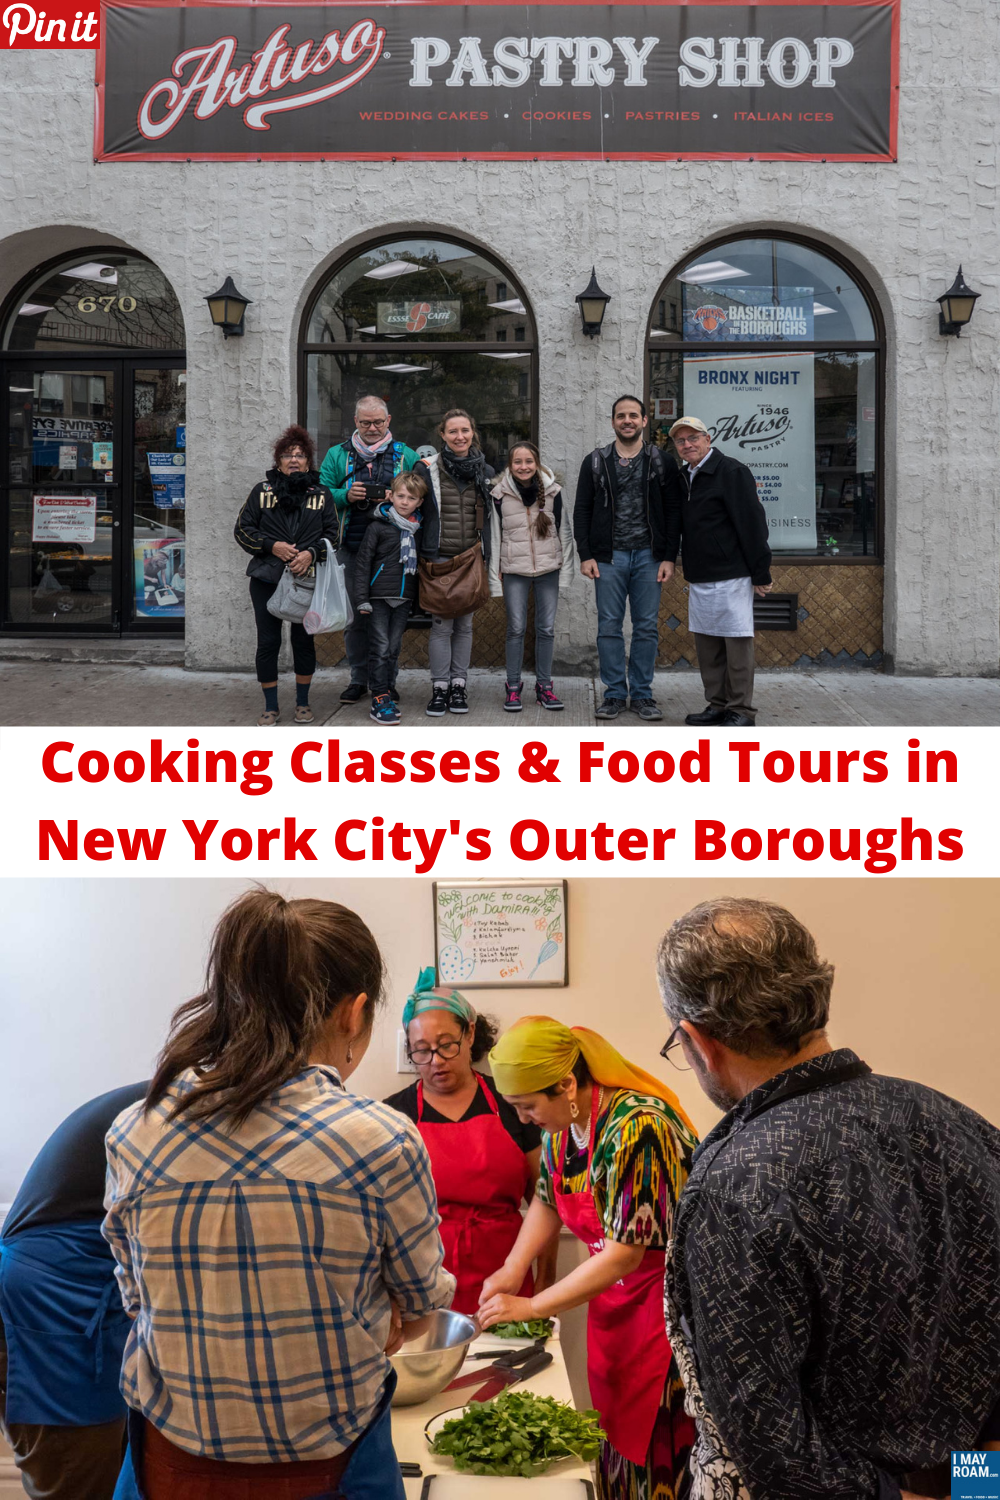 Pinterest Cooking Classes & Food Tours in New York City's Outer Boroughs